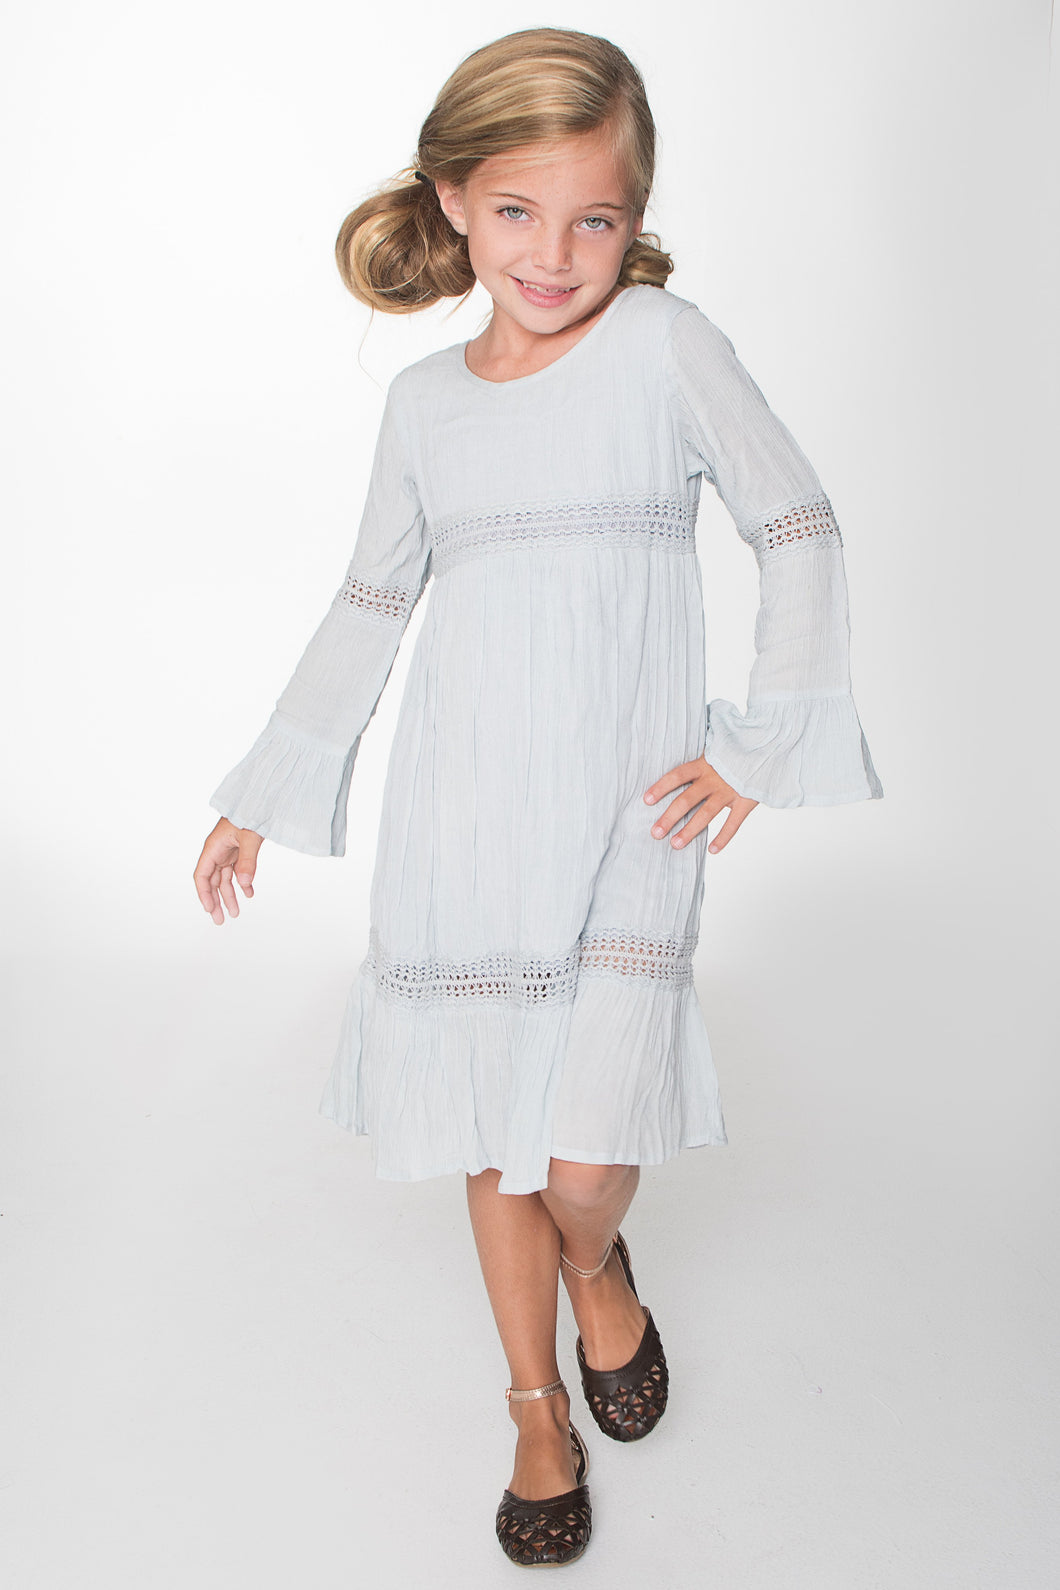 Powder Blue Lace Detail Long Bell Sleeves Dress - Kids Clothing, Dress - Girls Dress, Yo Baby Online - Yo Baby